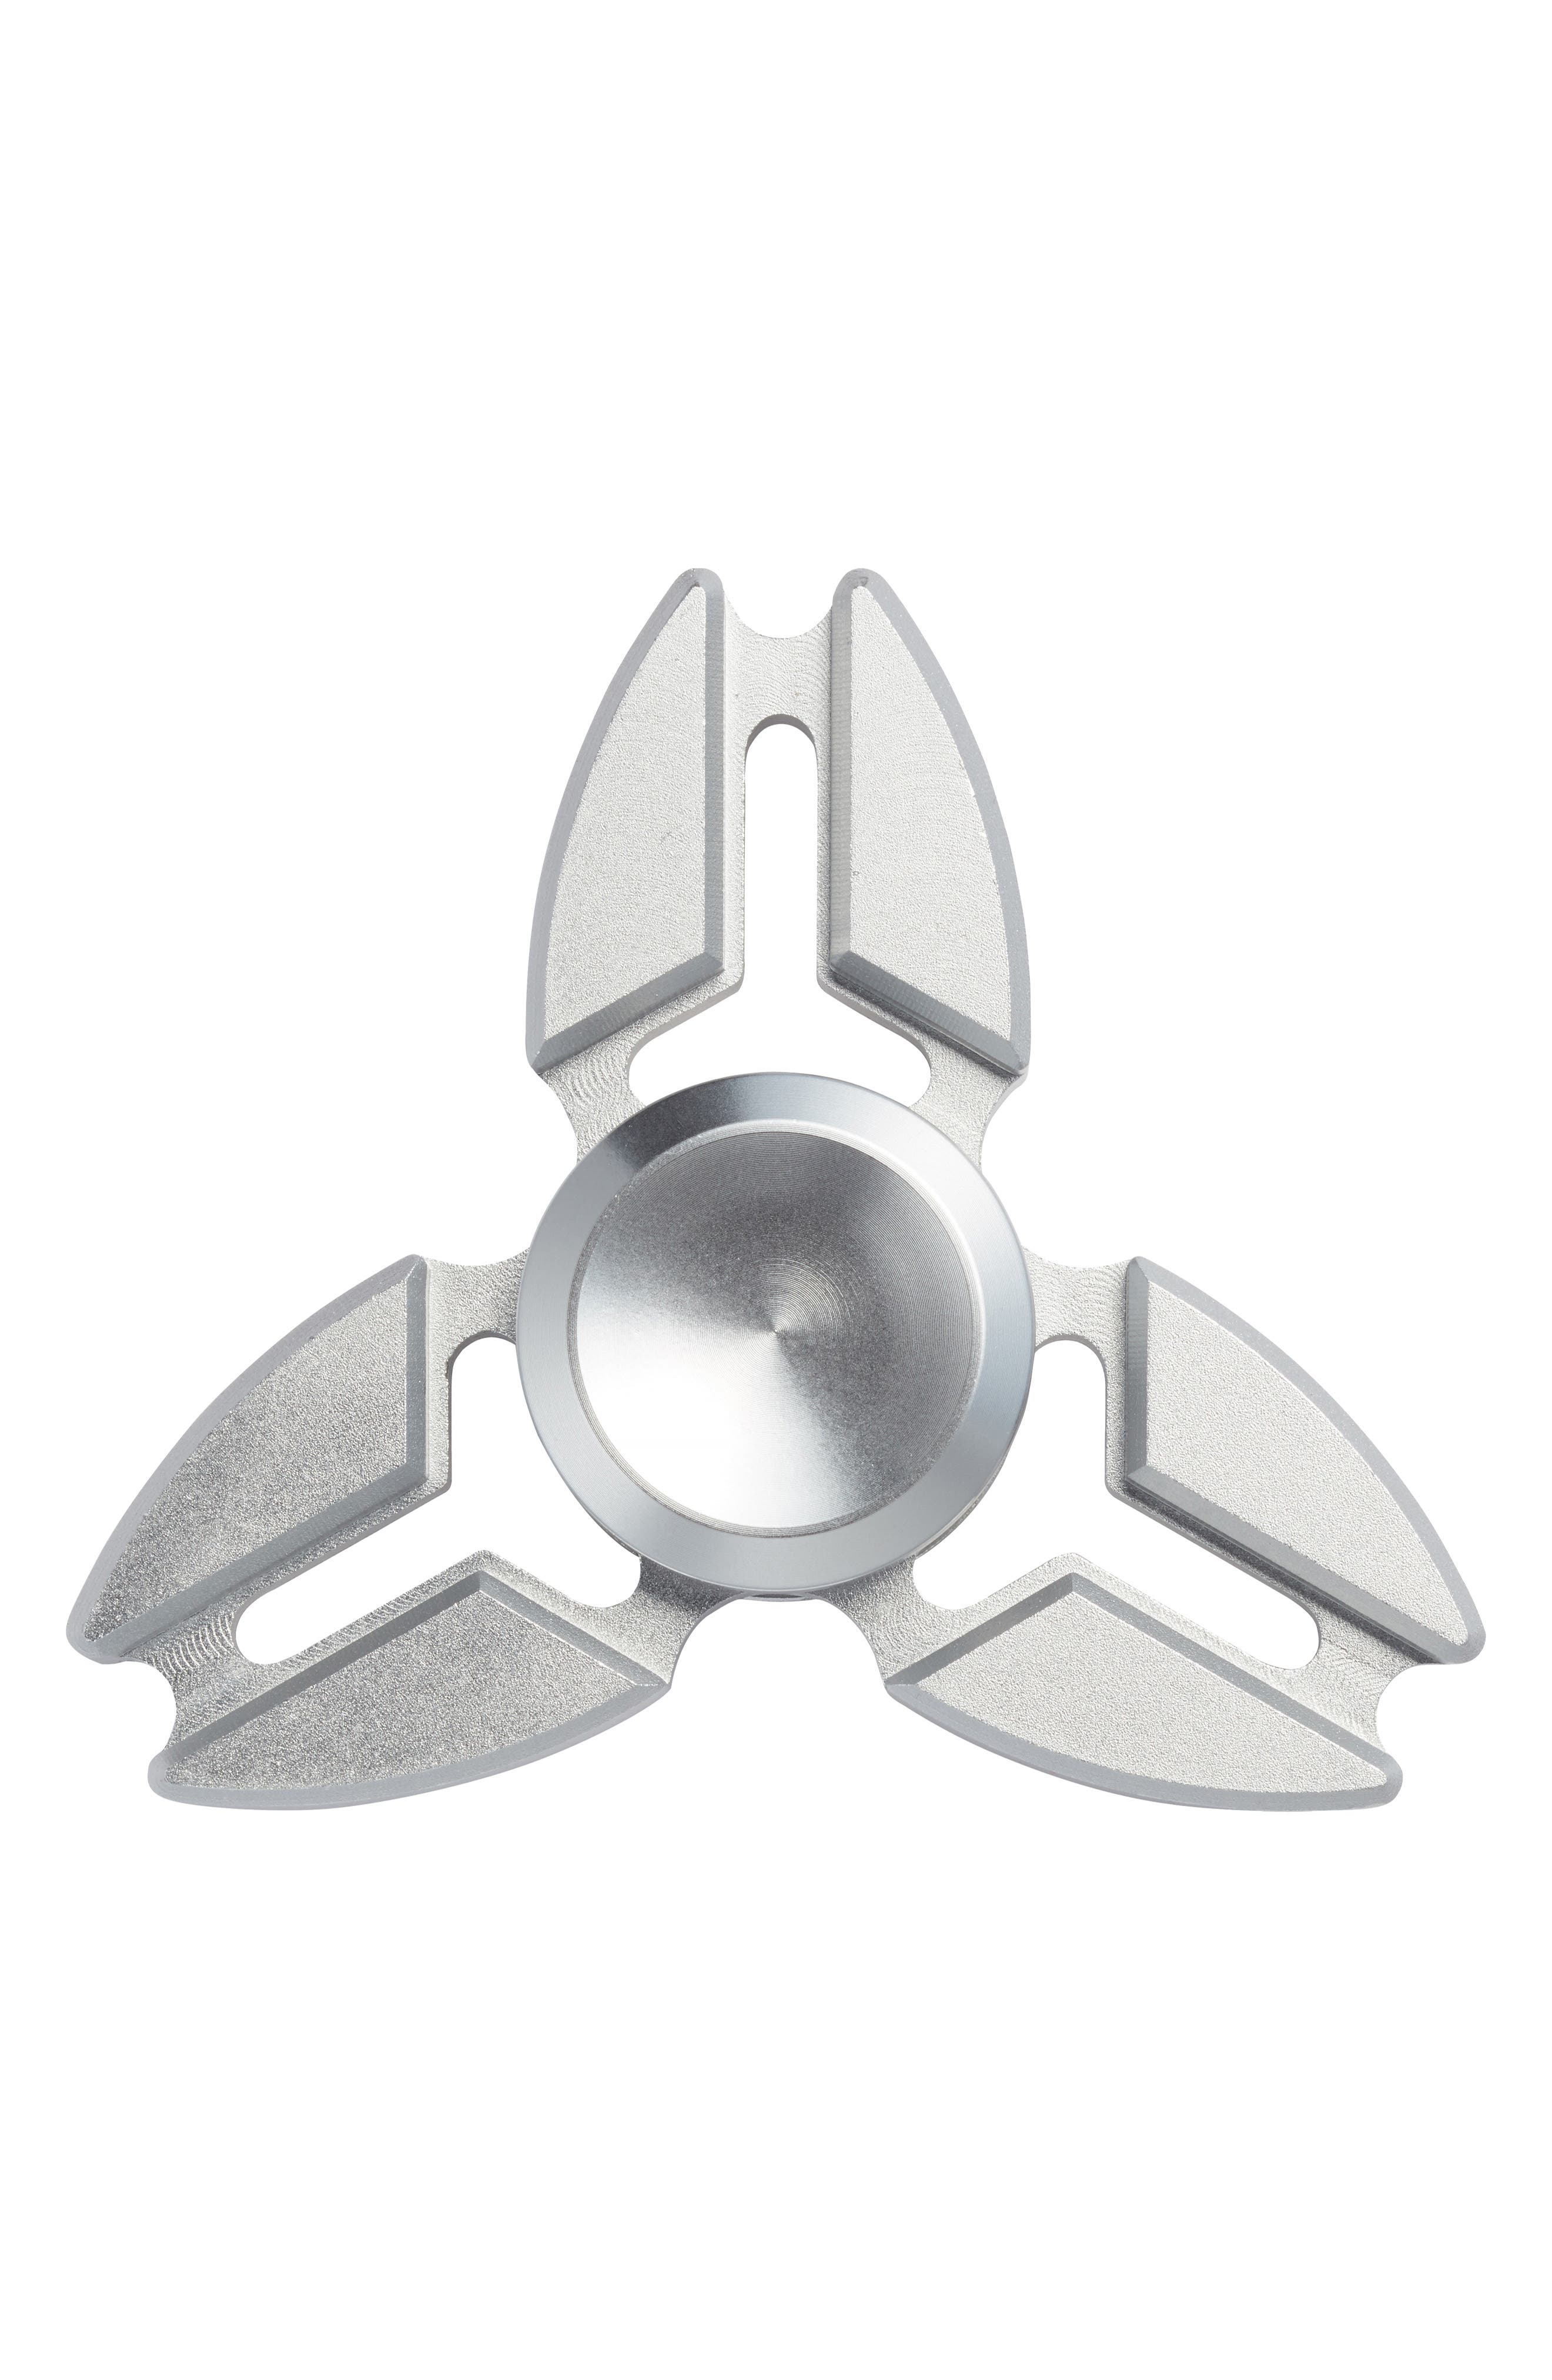 Addictive Fidget Toys Coulee Tri Bar Fidget Spinner